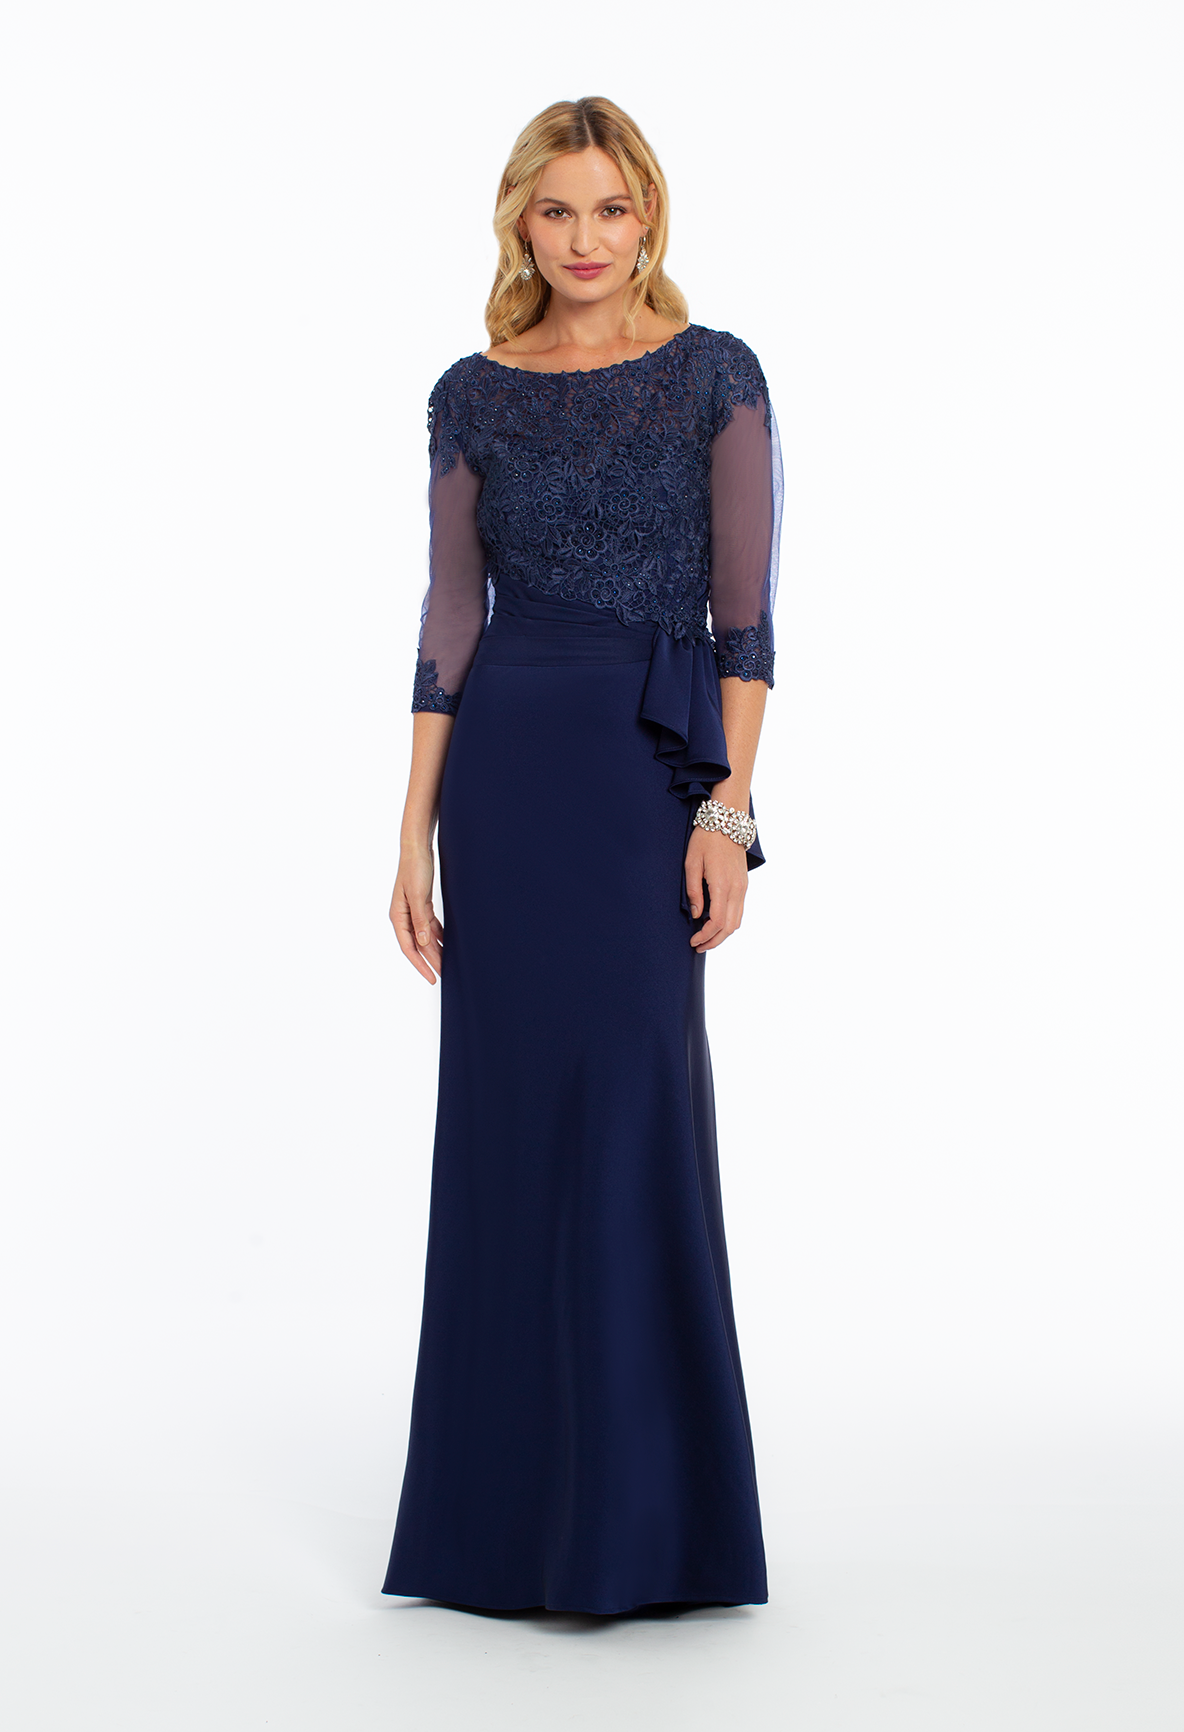 Lace illusion sleeve pleated cascade evening dress by camille la vie